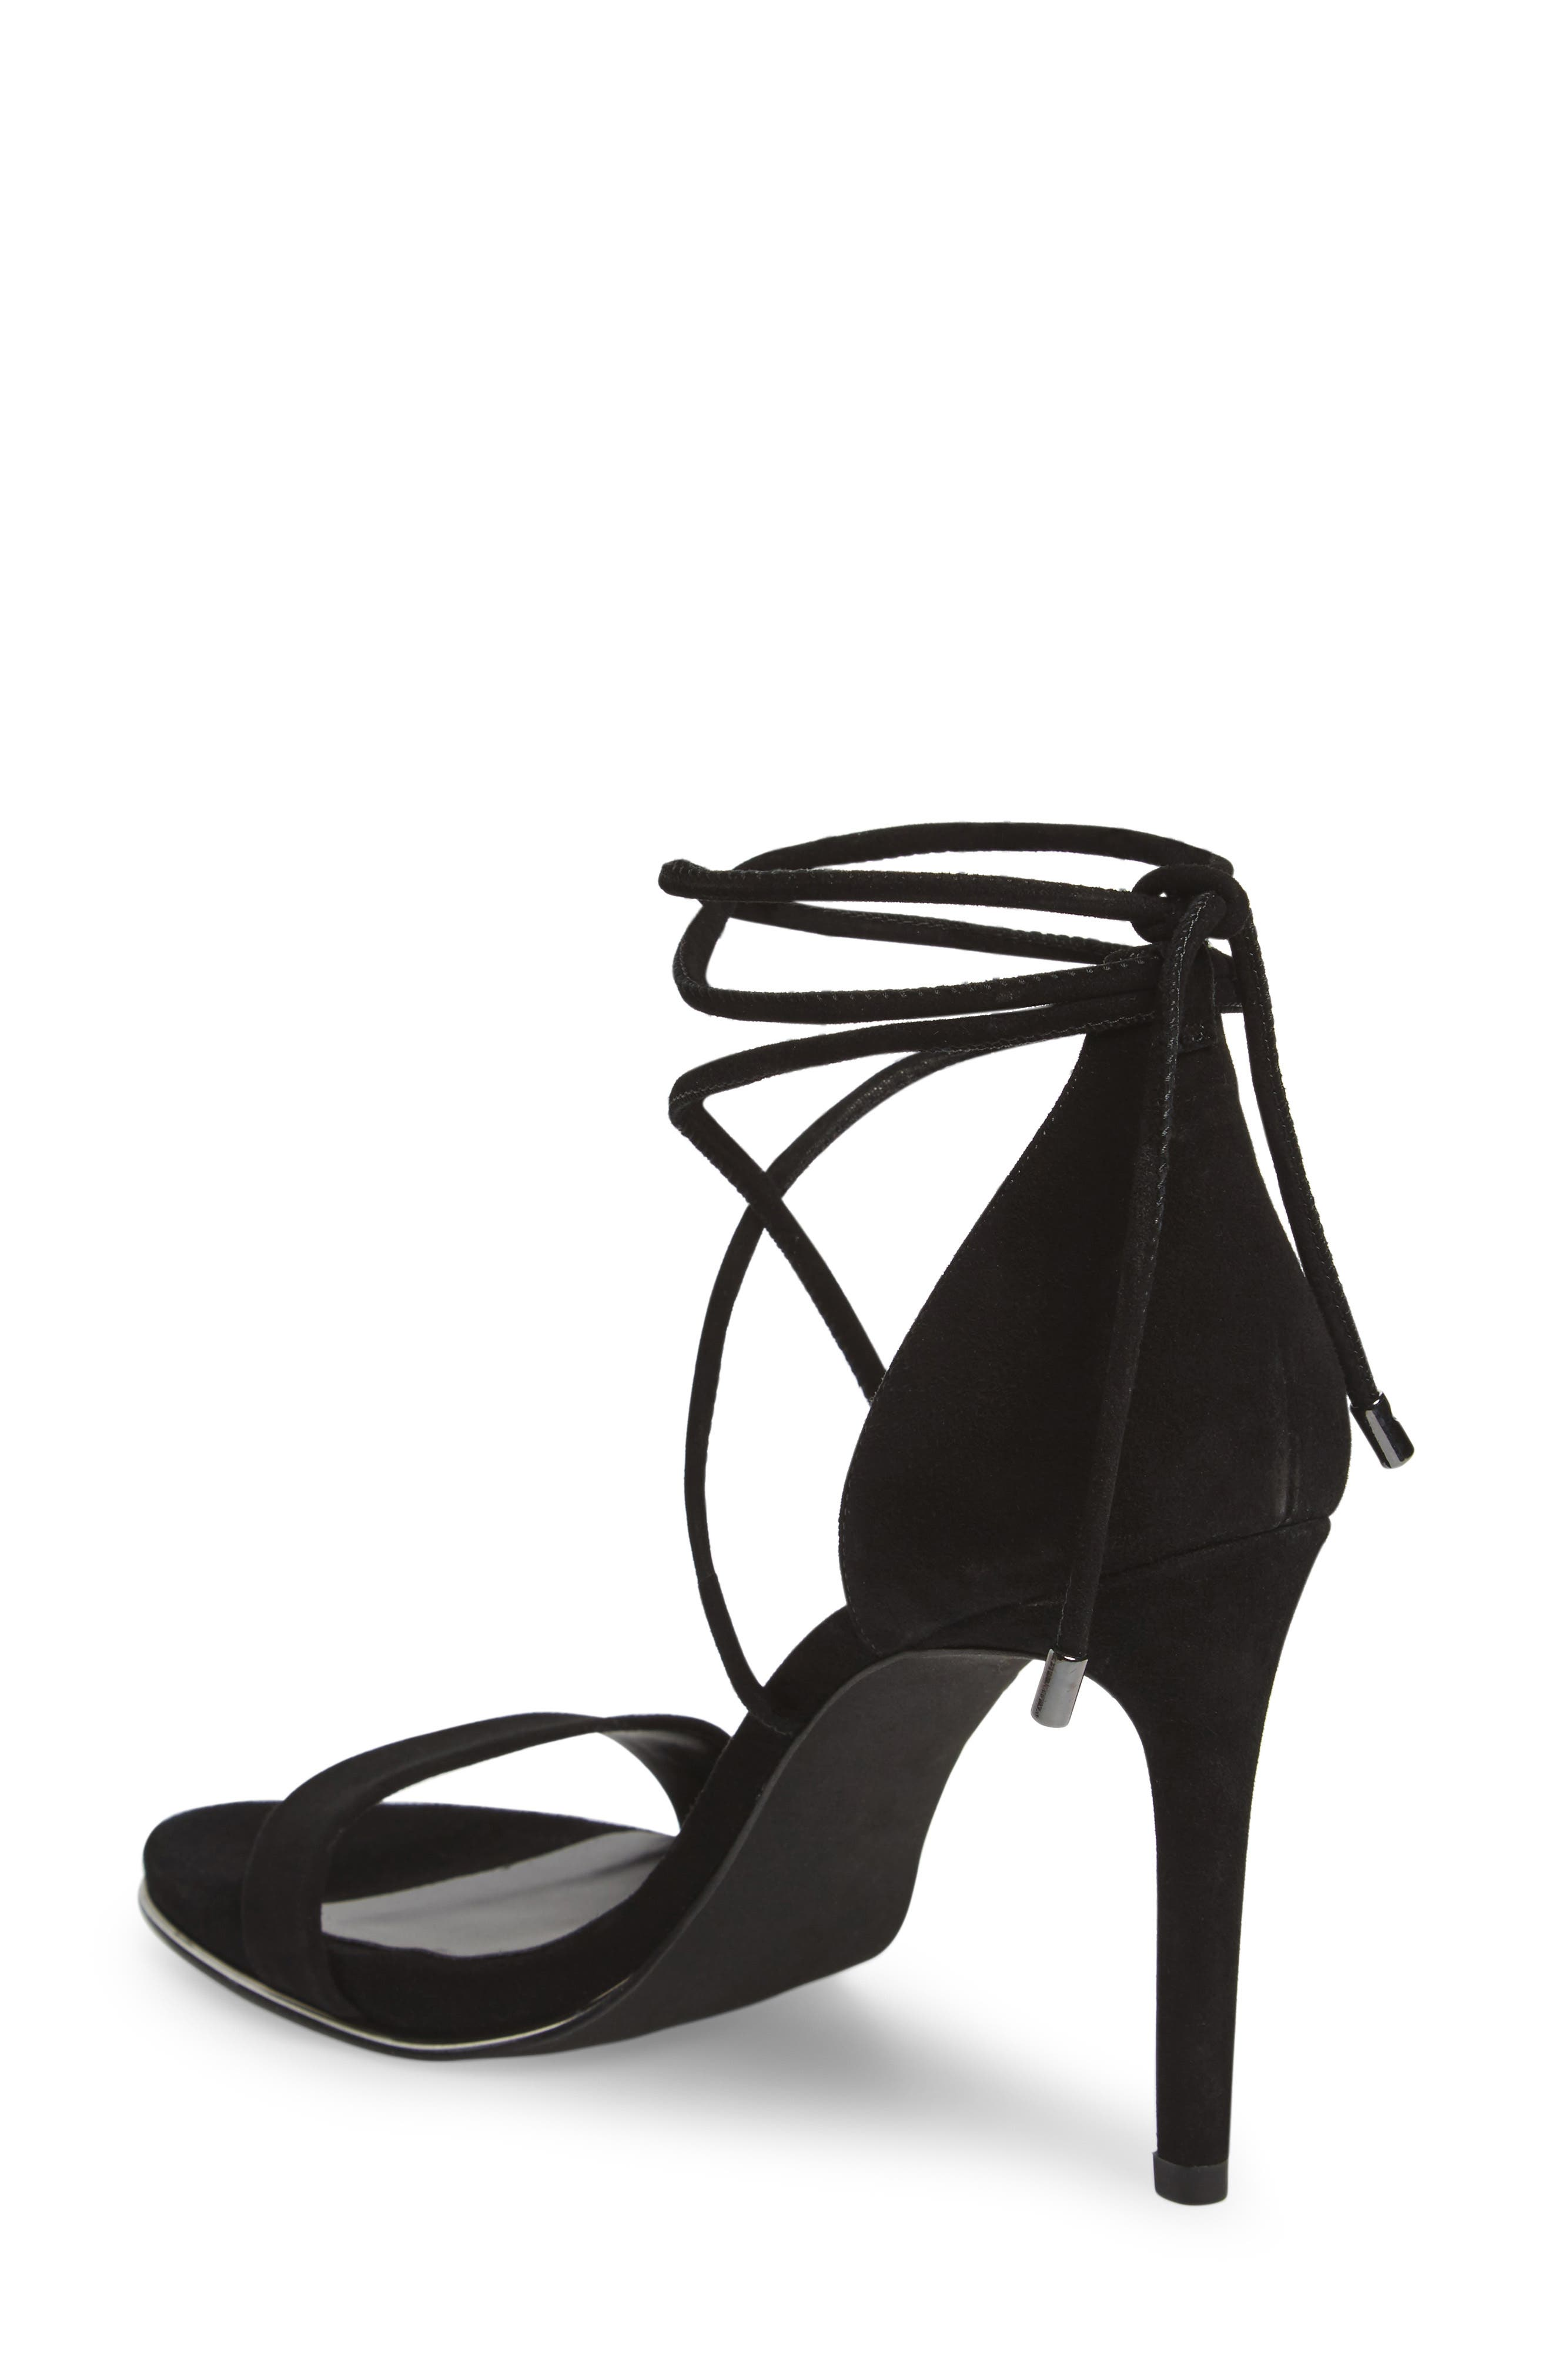 KENNETH COLE NEW YORK, Berry Wraparound Sandal, Alternate thumbnail 2, color, BLACK SUEDE